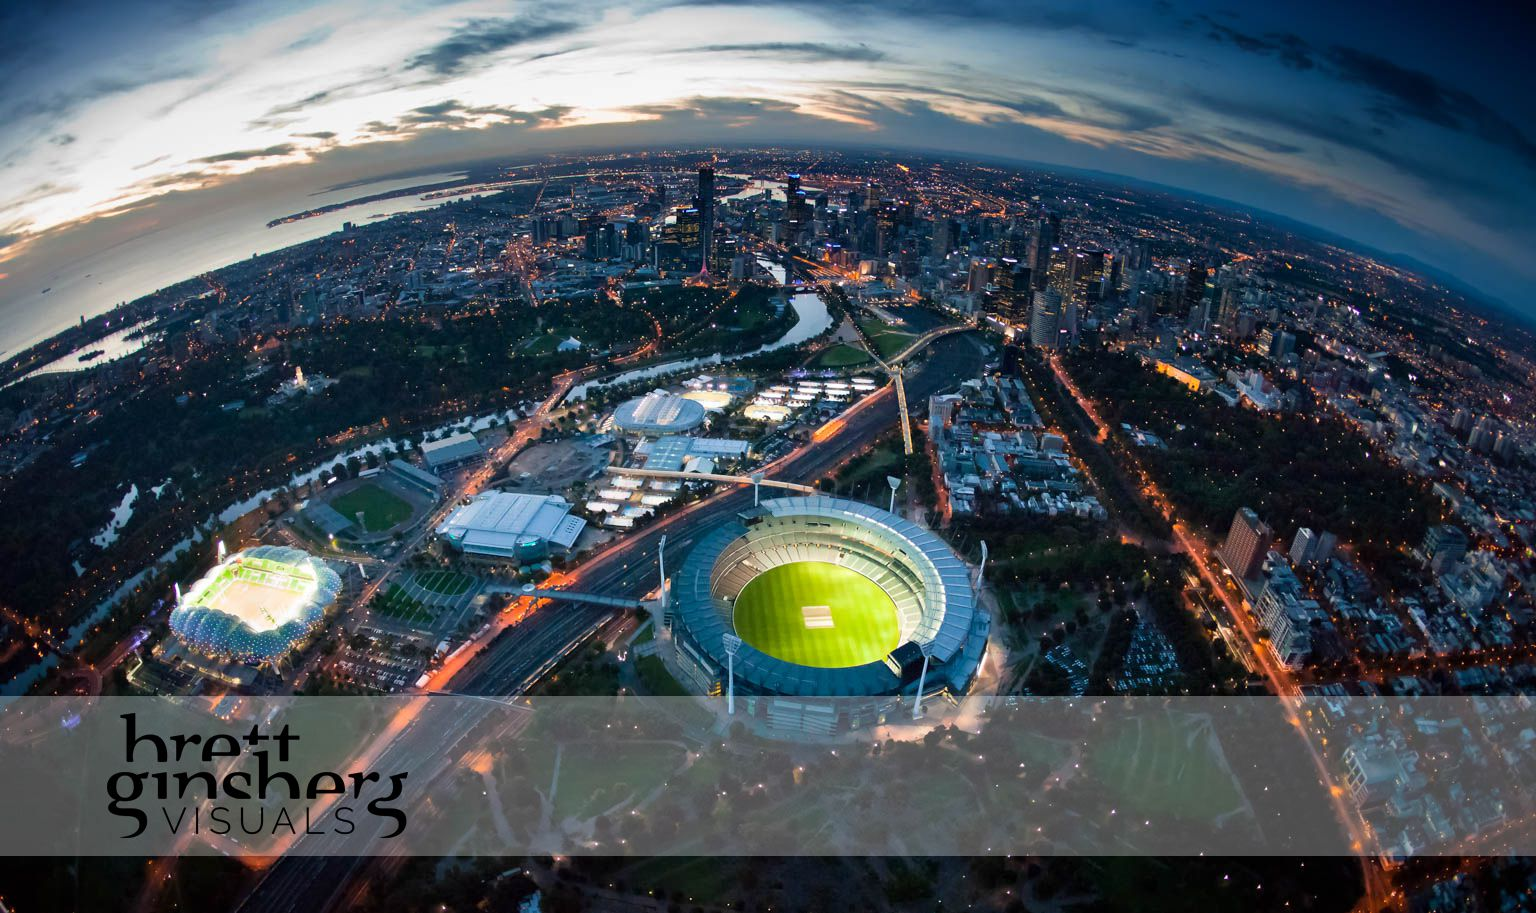 aerial image of melbourne at sunset with the melbourne cricket ground